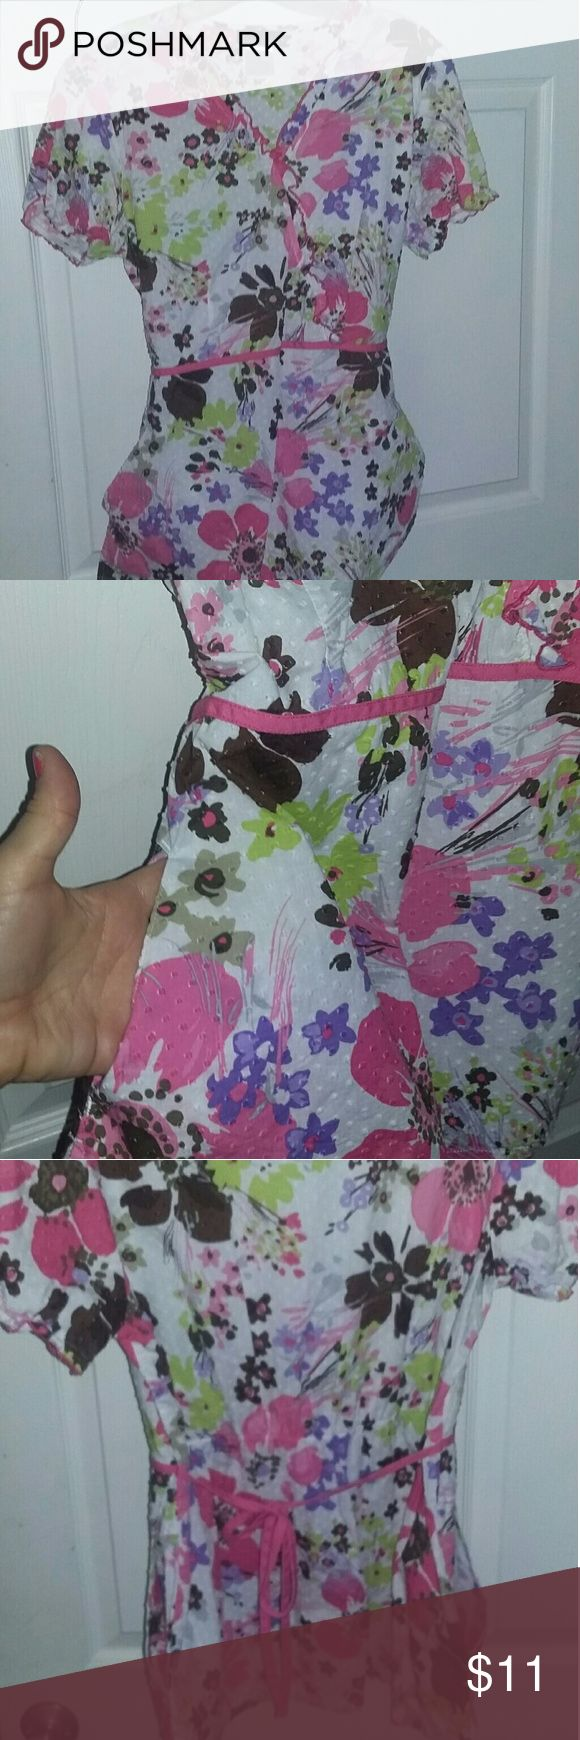 Cherokee floral scrub top M Great summer scrub top. Cherokee brand floral size medium in excellent condition Cherokee Tops